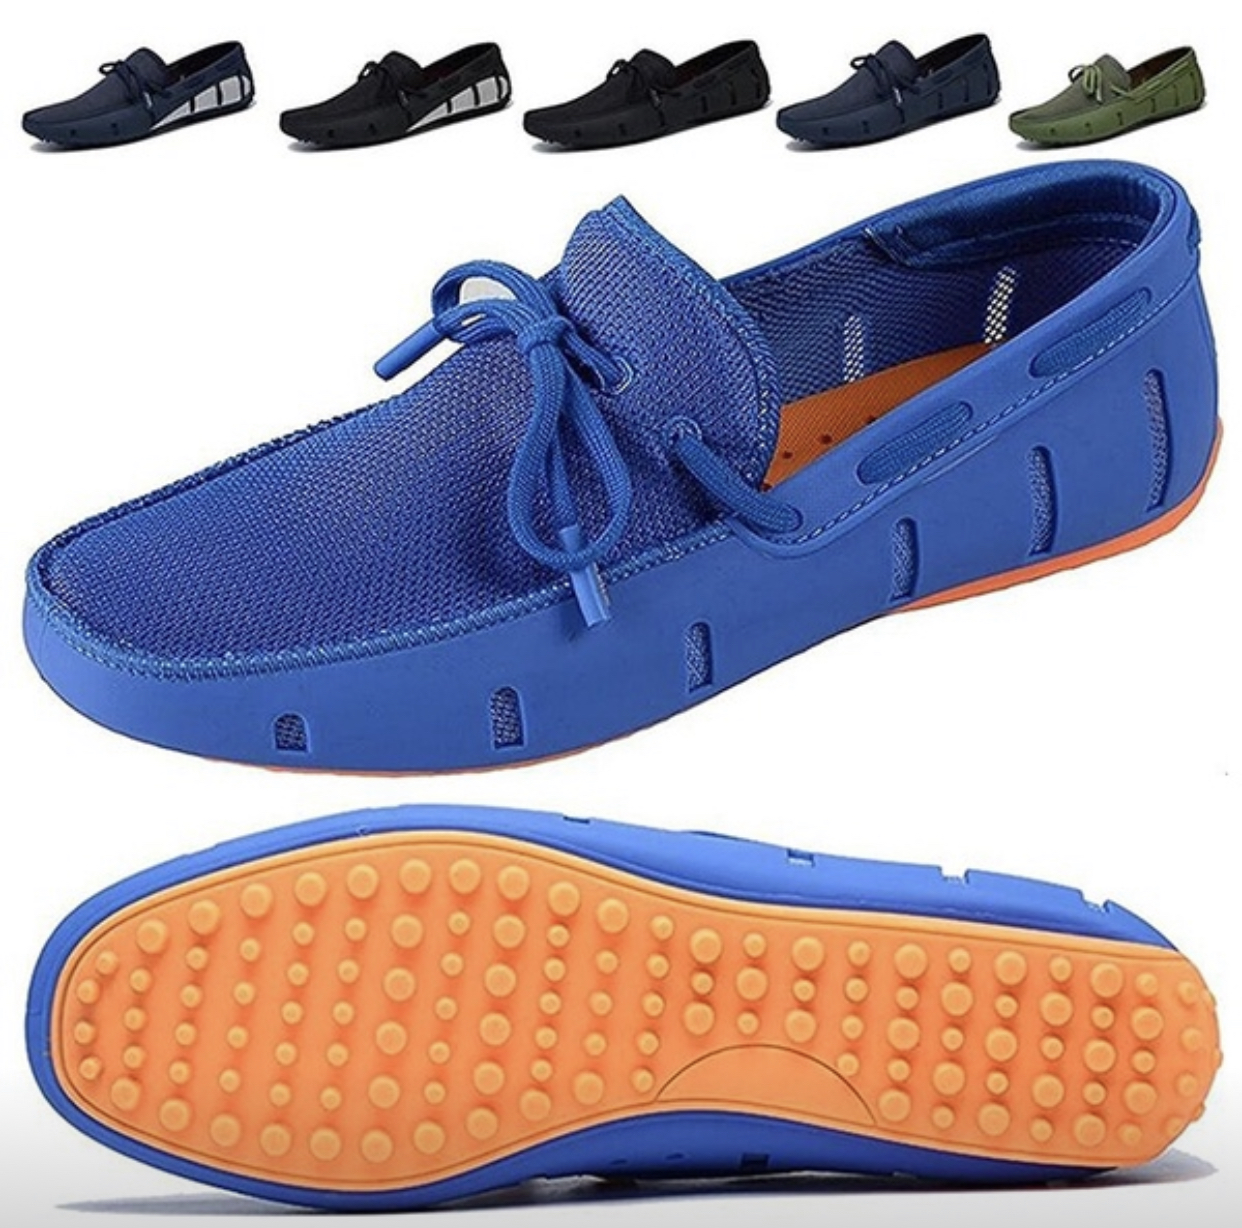 Summer Men Driving Loafers Fashion Slipper Casual Slip On Boat Shoes For Homme Femme Famous Brand Shoes 2020X002